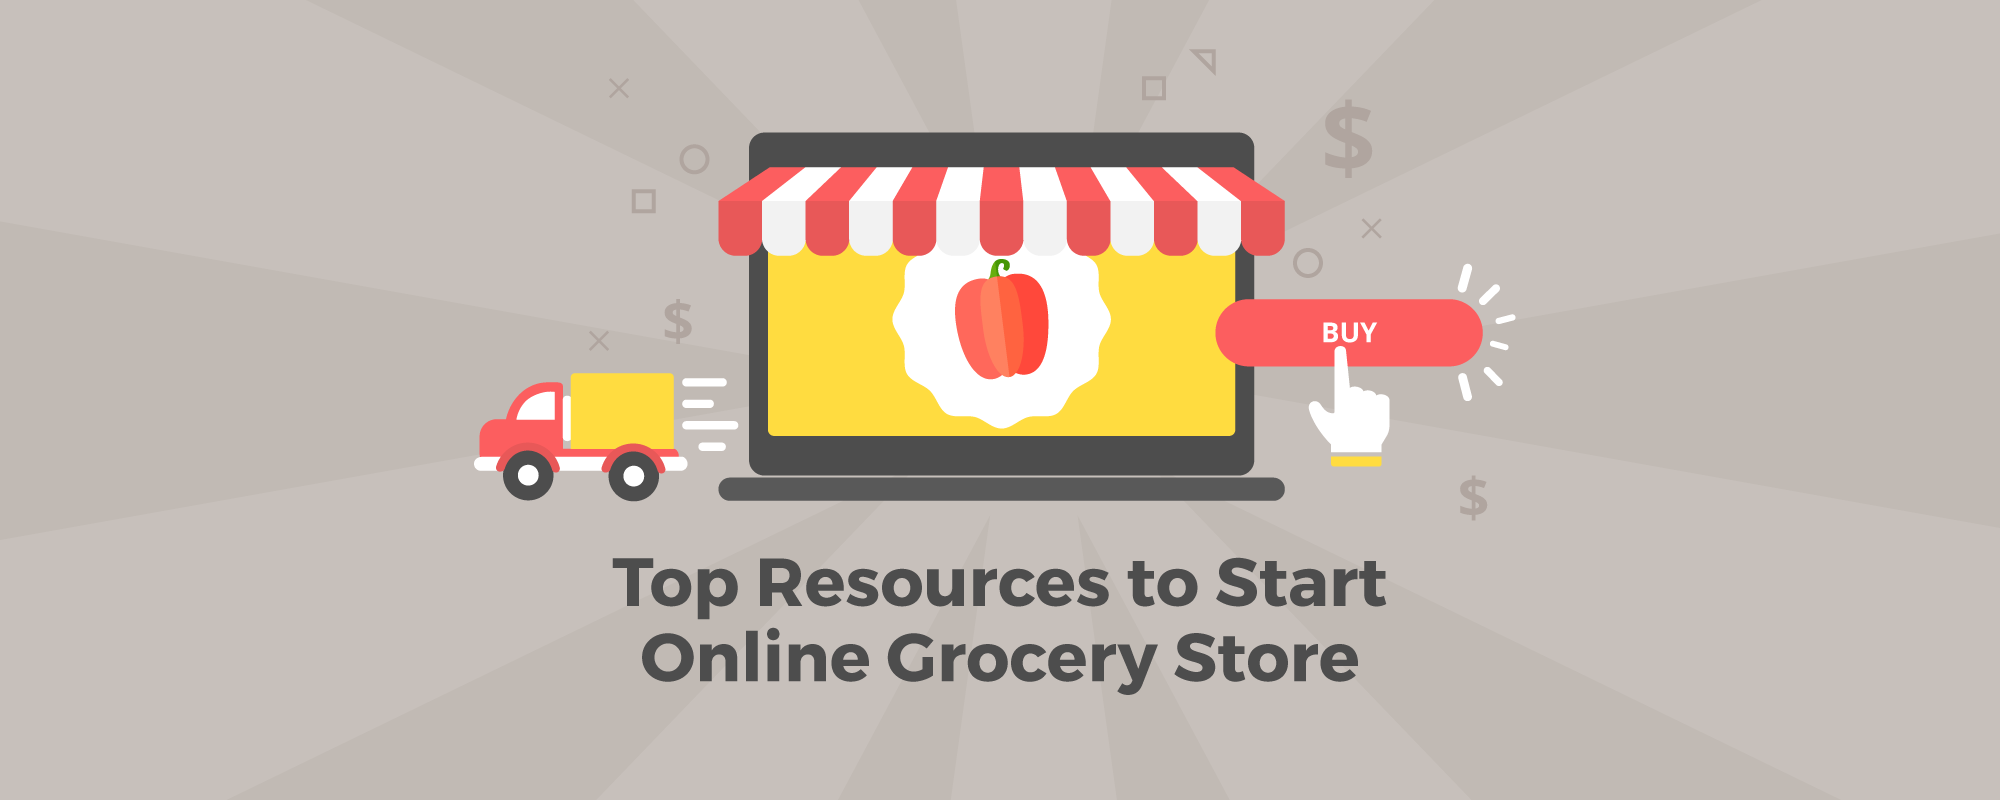 Top Resource for Online Grocery Ordering and Delivery Website Aspirants